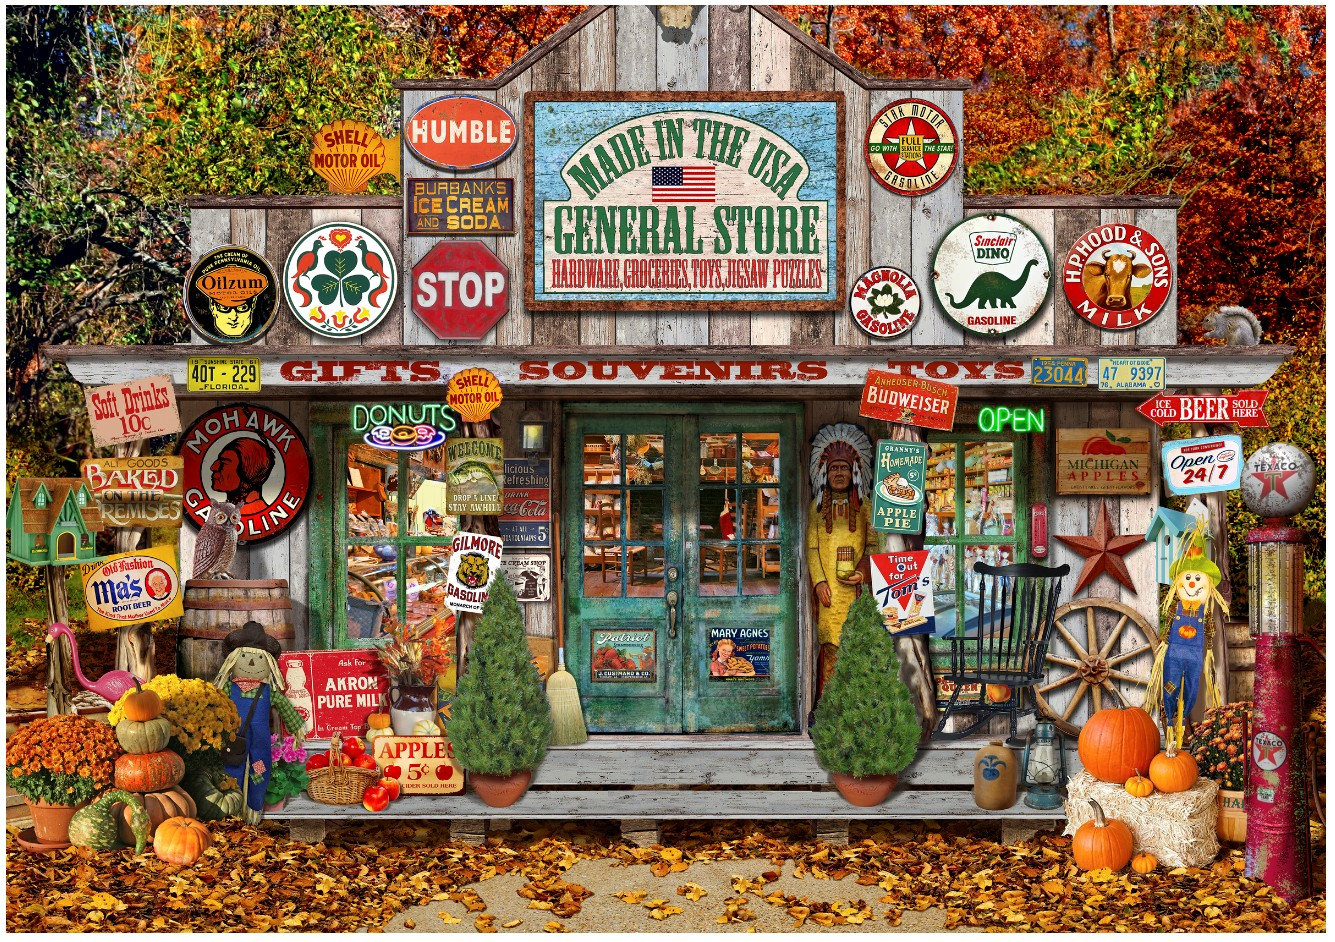 wentworth-holzpuzzle-general-store-250-teile-puzzle-wentworth-801808